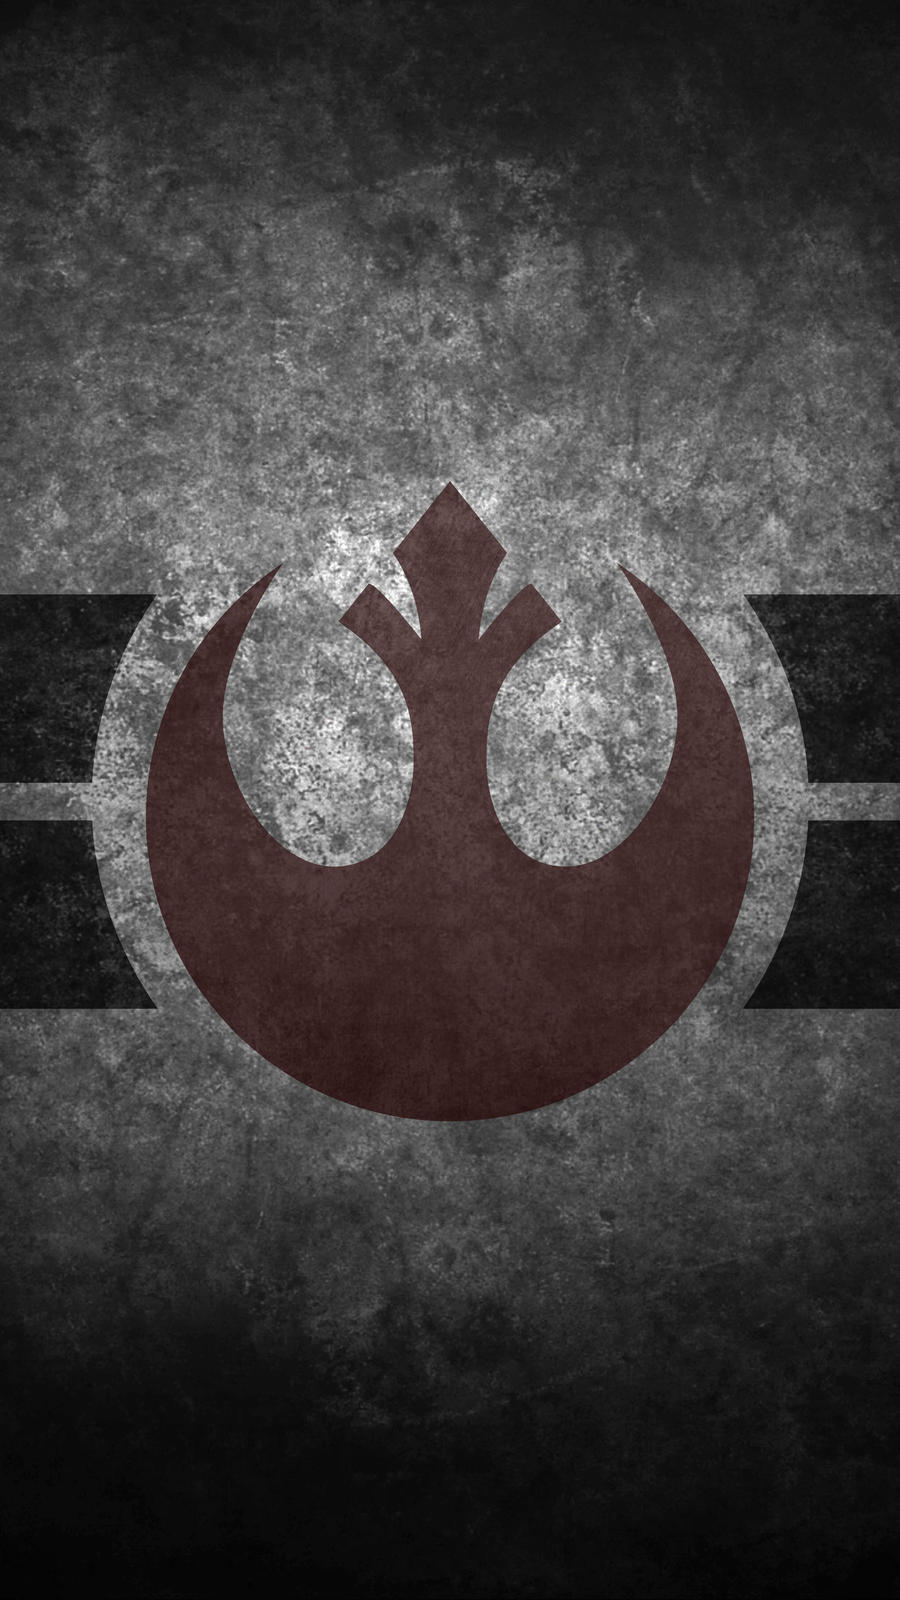 Rebel Insignia Symbol Cellphone Wallpaper By Swmand4 On Star Wars Rebels Logo